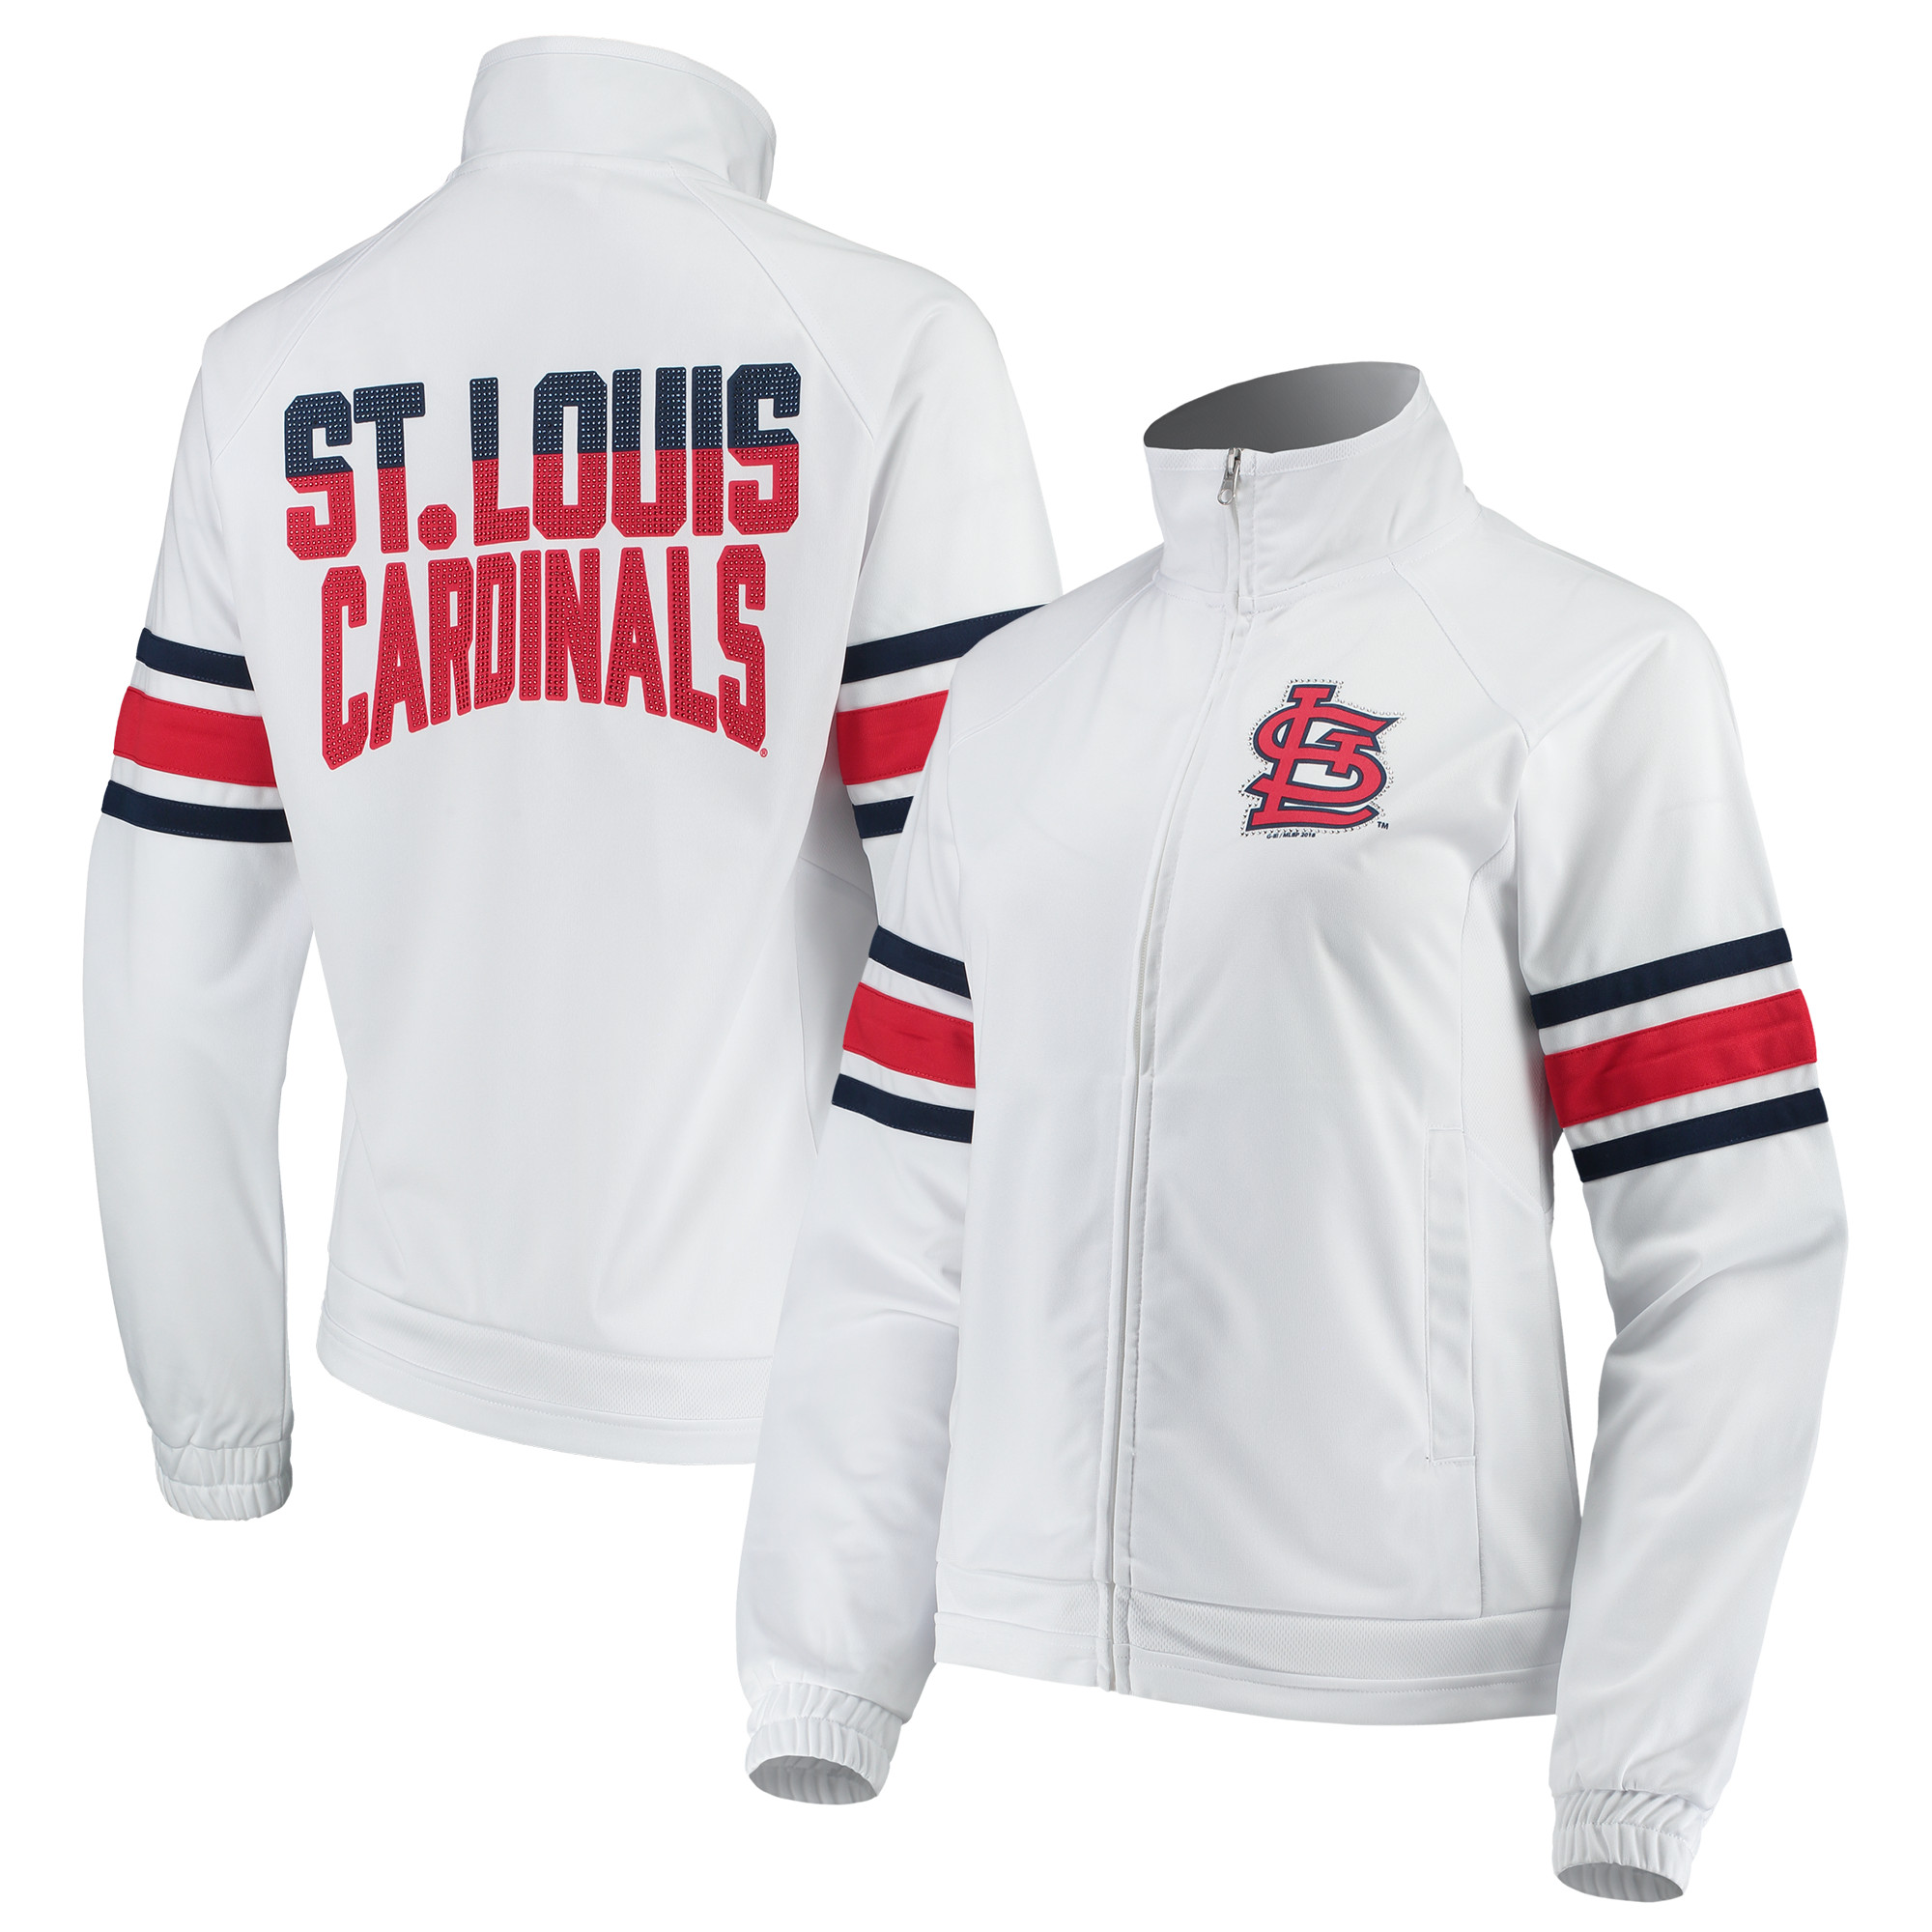 St. Louis Cardinals G-III 4Her by Carl Banks Women's Game Score Full-Zip Track Jacket - White